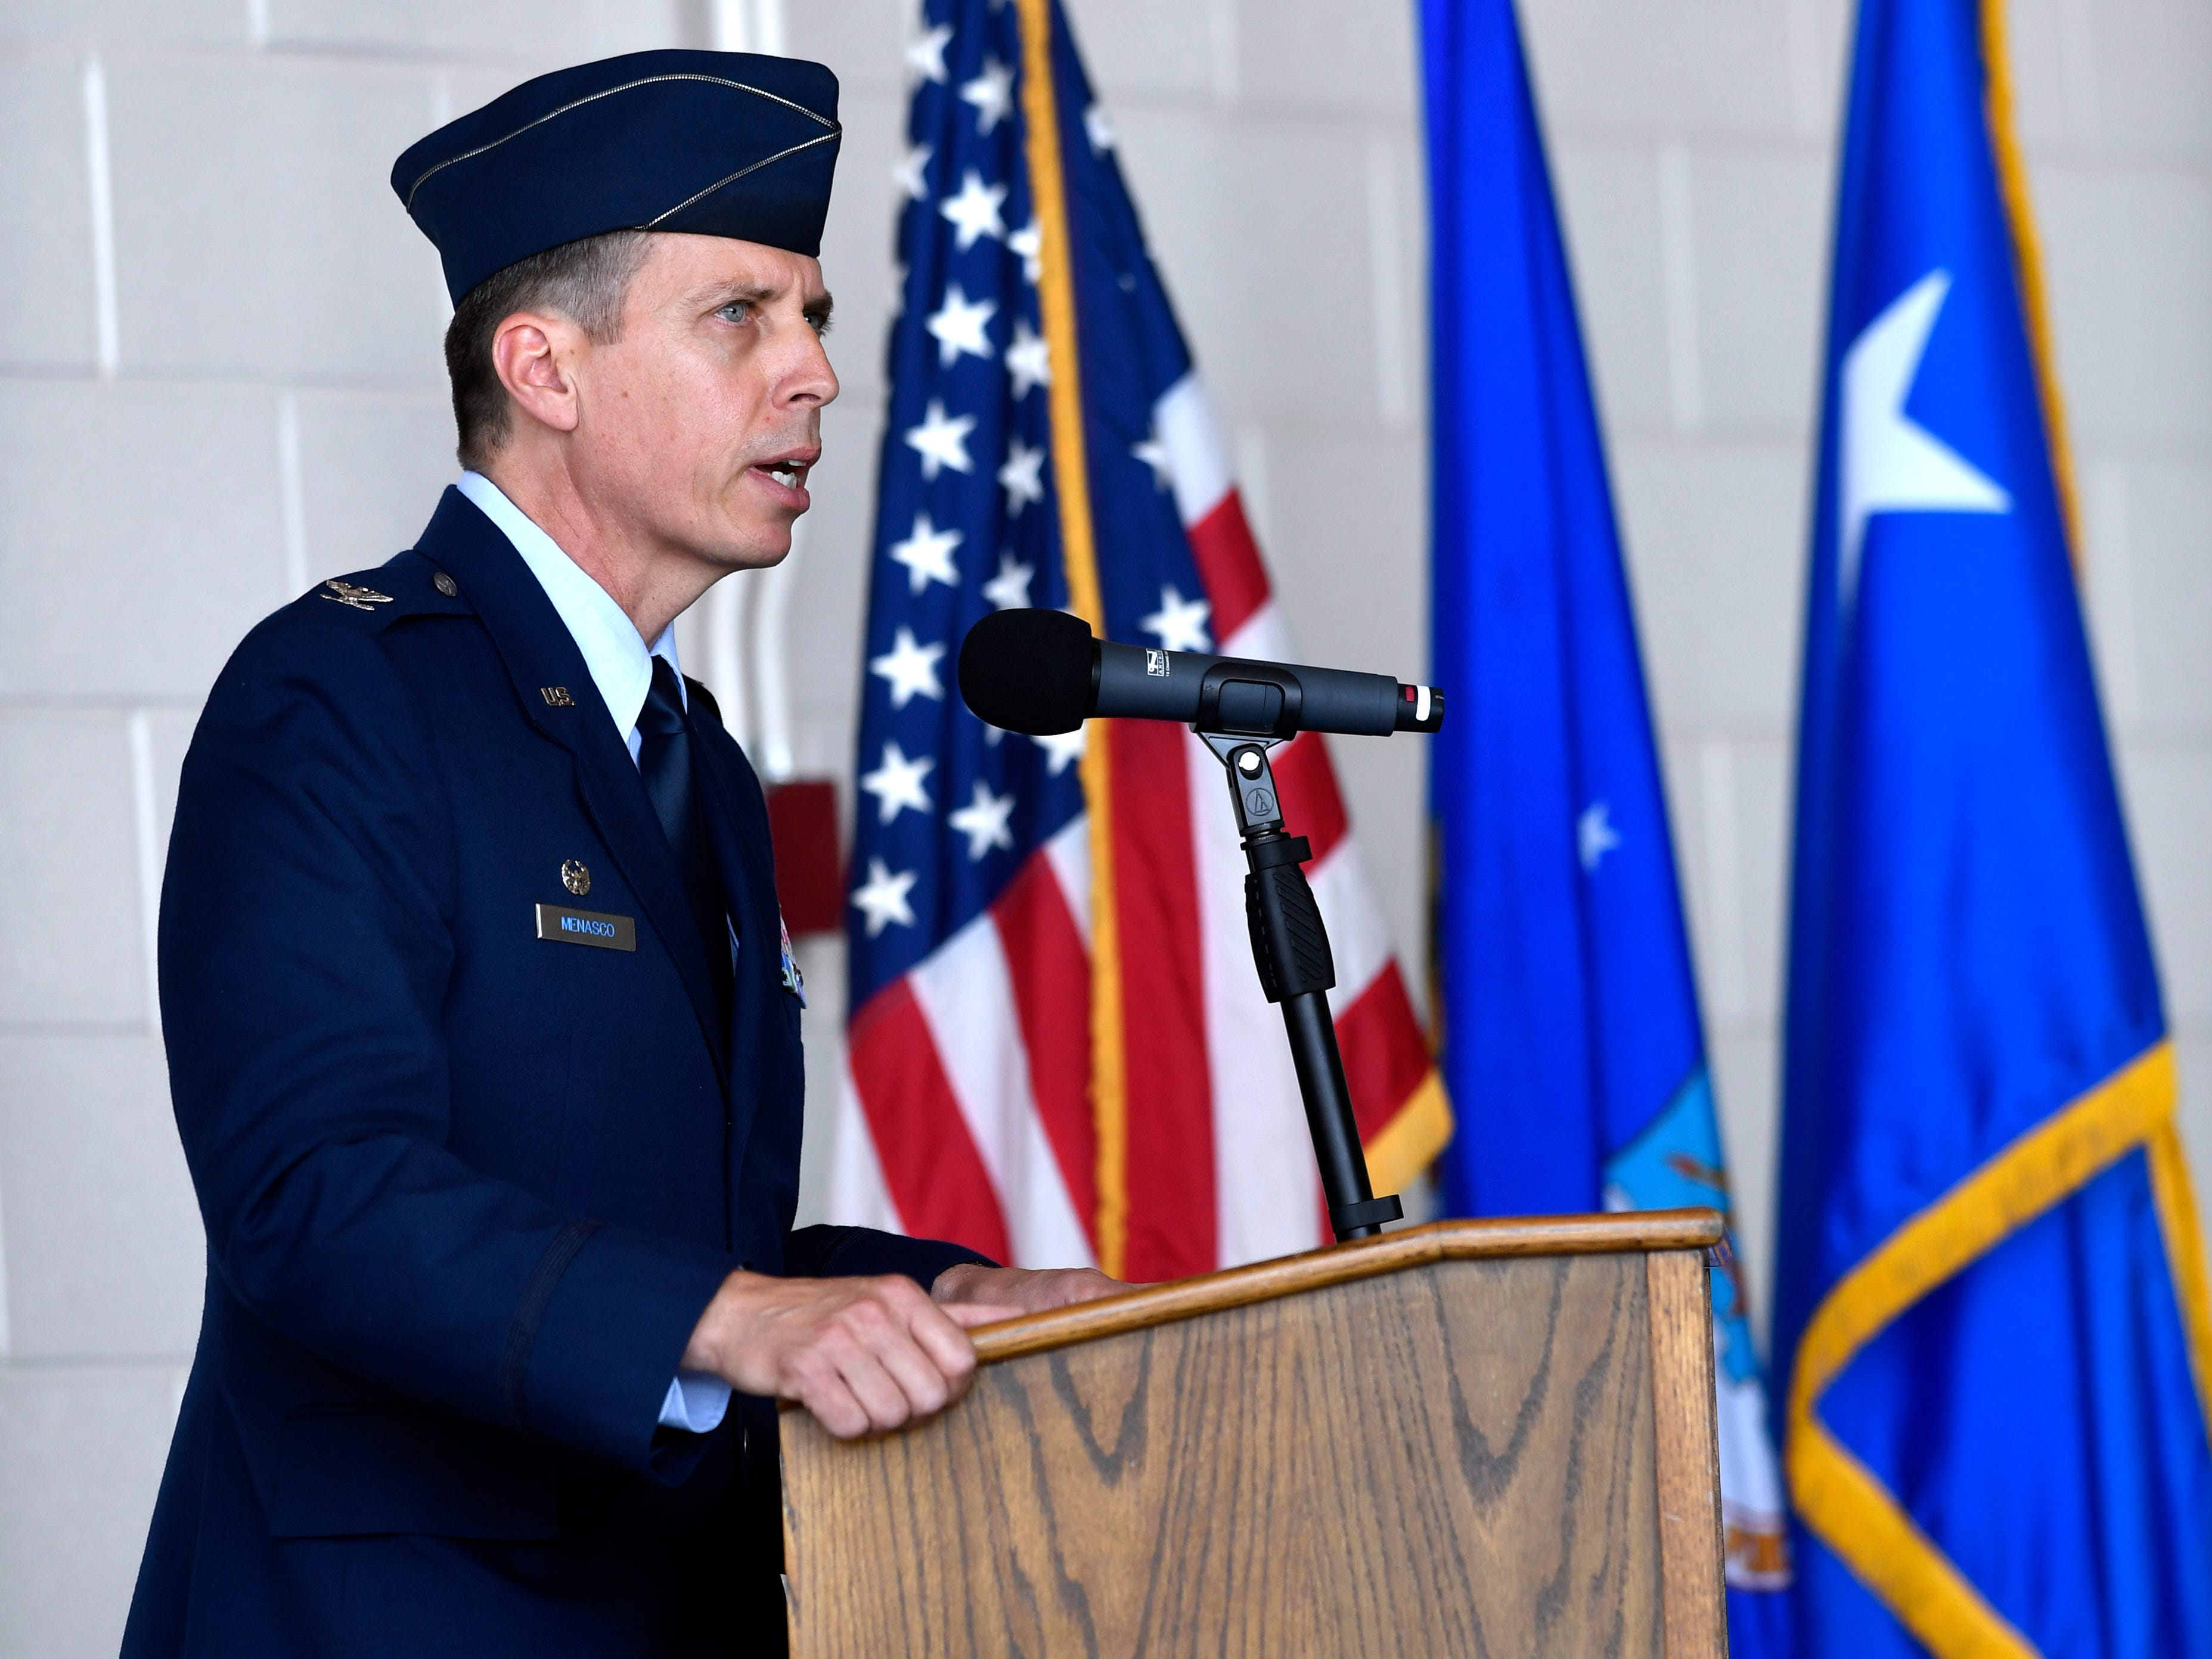 Col. Jeffrey Menasco makes his remarks after assuming command of the 317th Airlift Wing during an assumption of command ceremony at Dyess Air Force Base Friday August 3, 2018.